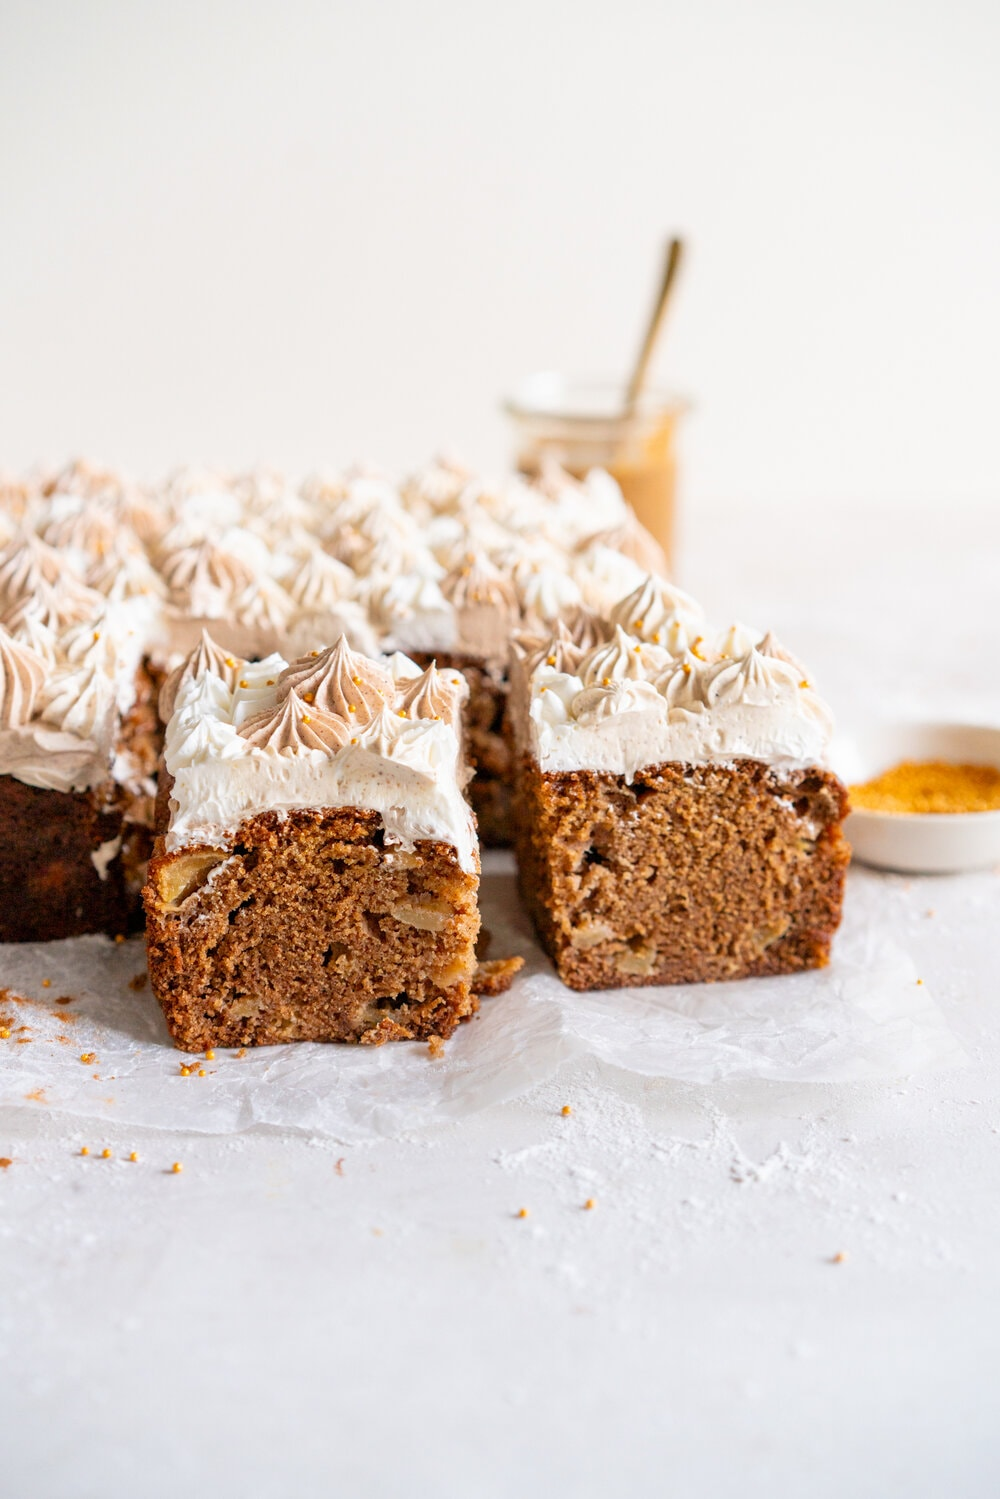 Apple Snack Cake with Ombre Walnut Praline Swiss Meringue Buttercream - a tender wholemeal apple cake is topped with swirls of buttercream made with swiss meringue buttercream flavoured with a nutty walnut praline